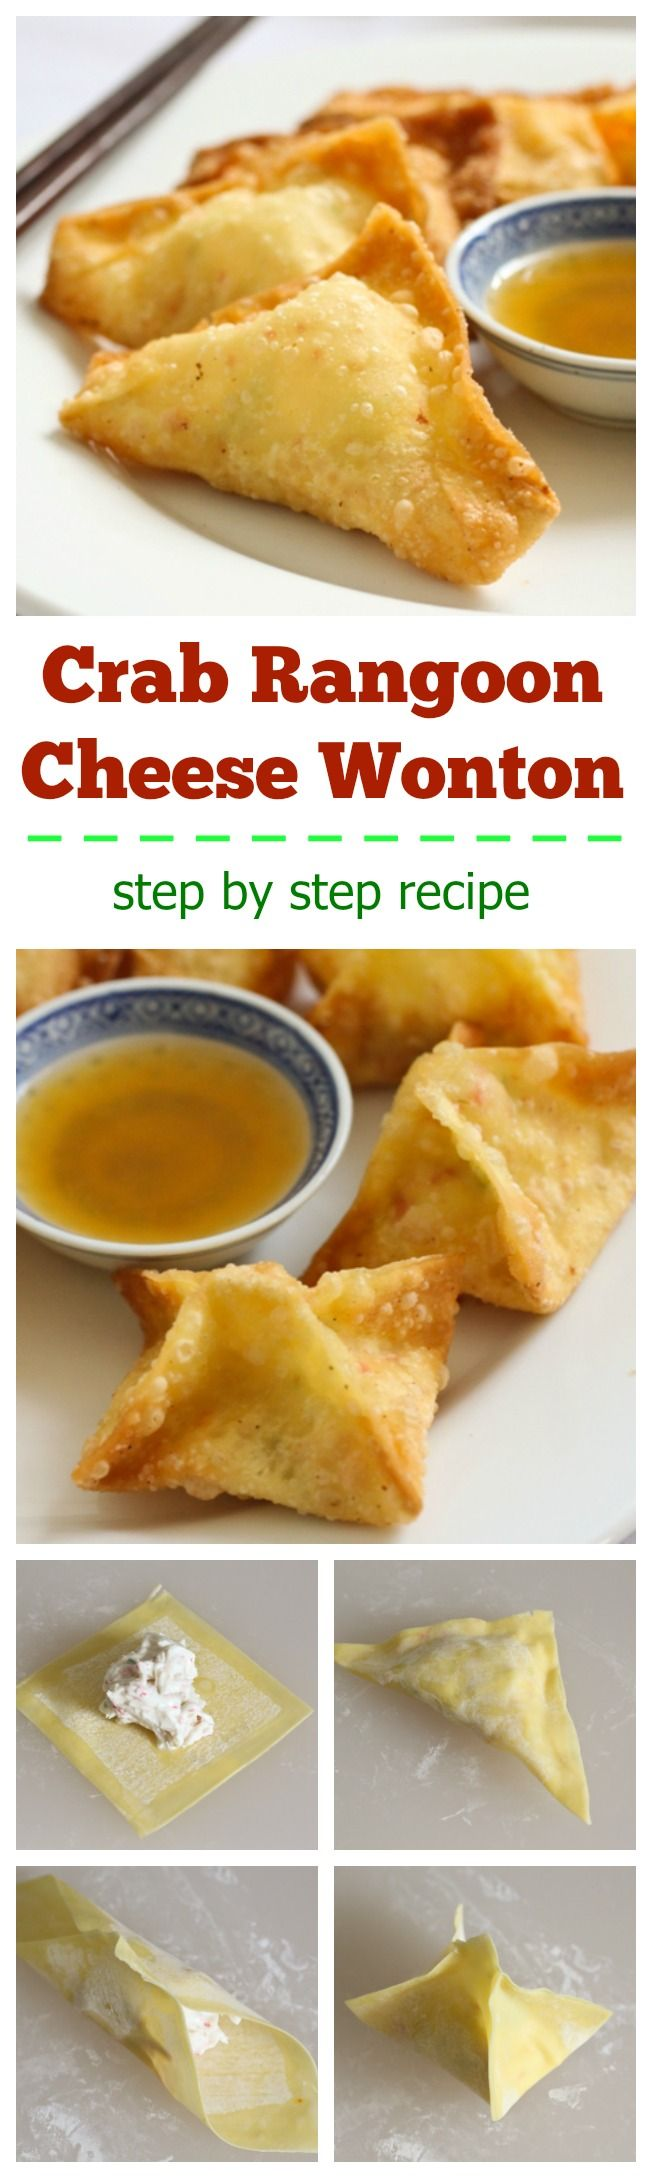 Crab rangoons aka cheese wontons or cheese puffs are a popular Chinese appetizer.  Following this simple step-by-step recipe to make for your next party!